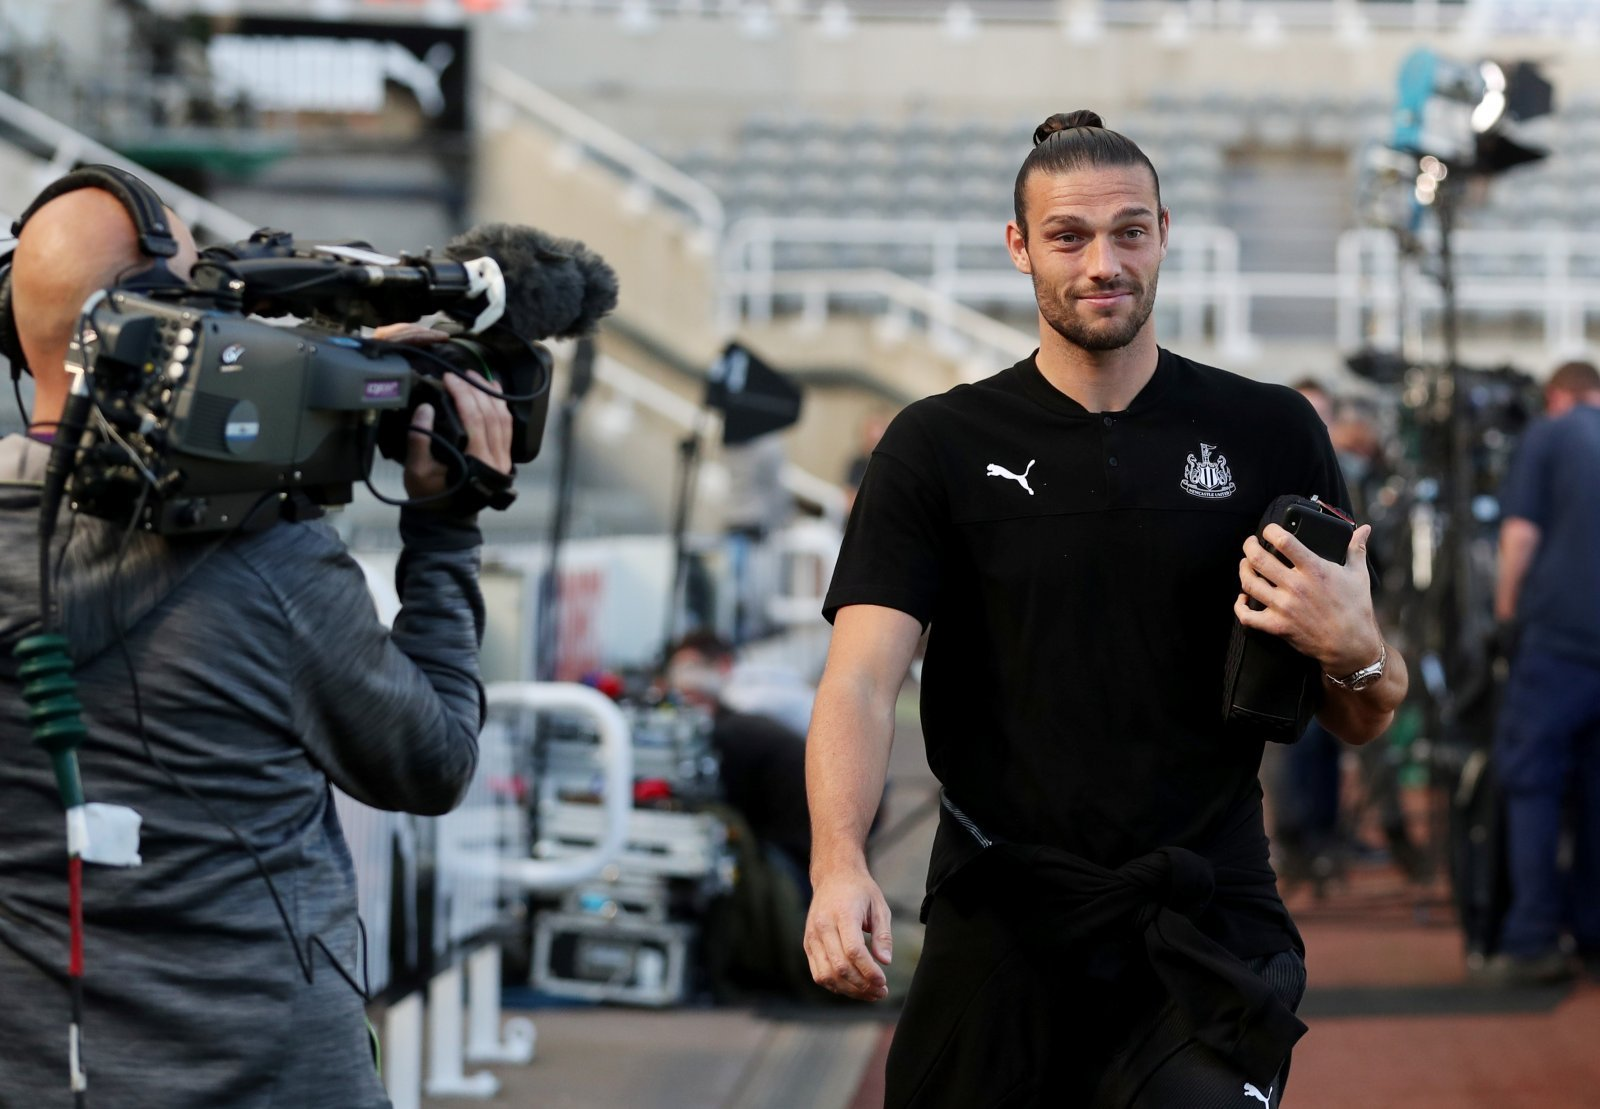 Newcastle United: Fans show love for Andy Carroll after Joelinton message